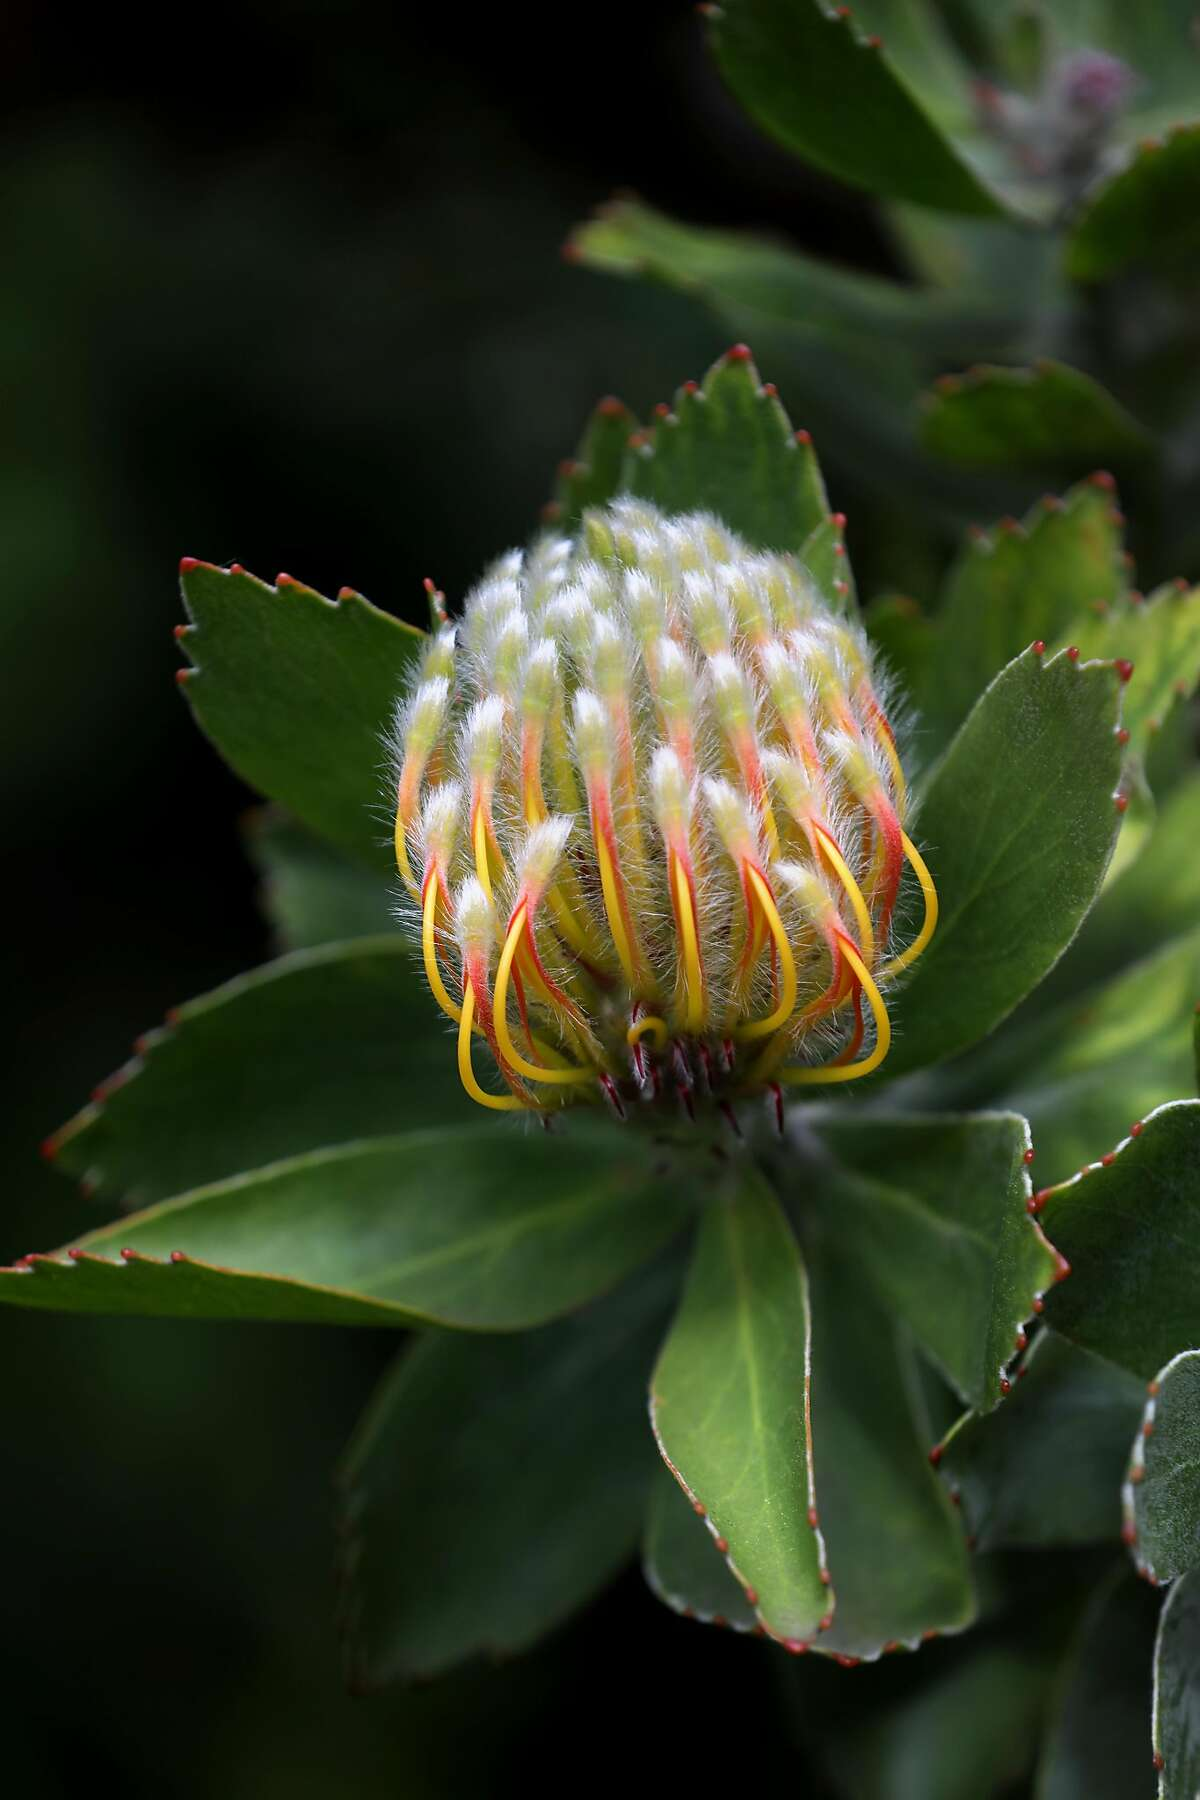 Proteaceae Leucospermum �Veldfire� seen at the South Africa garden in SF Botanical Gardens on Friday, March 13, 2020, in San Francisco, Calif.